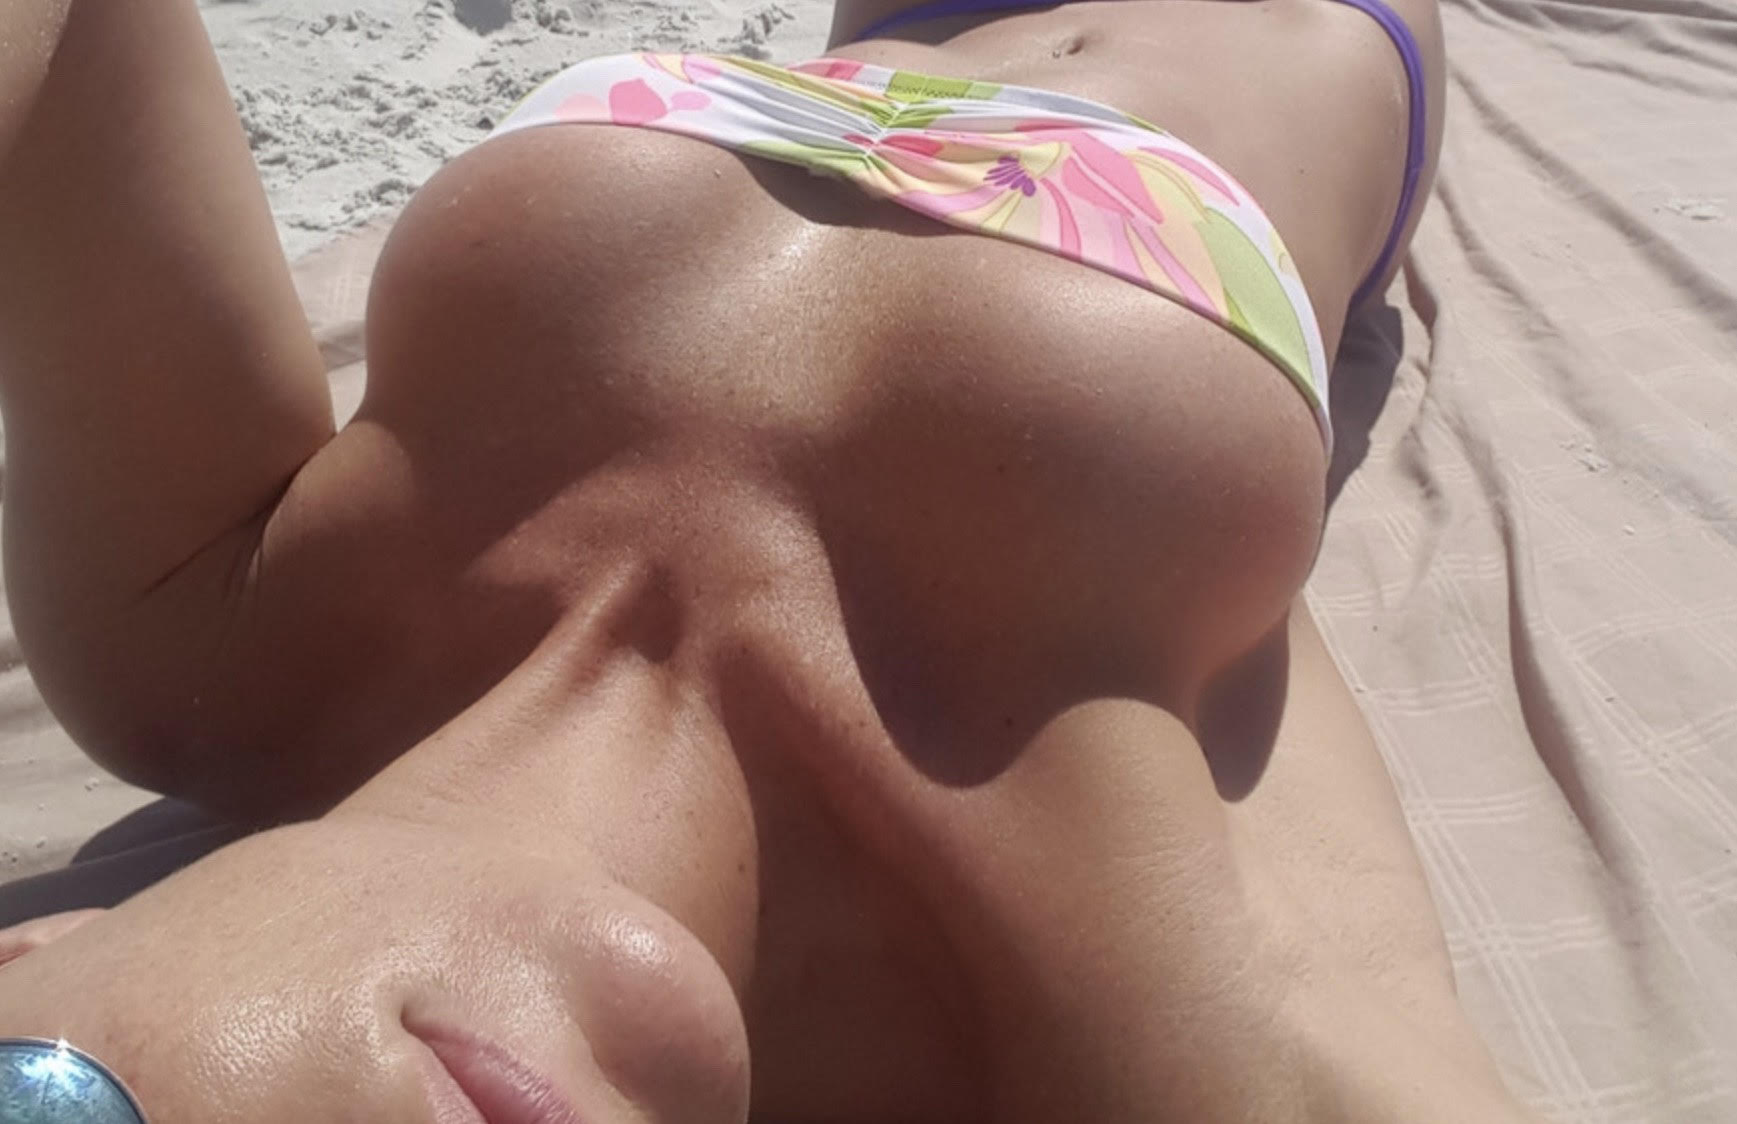 "alt=""Woman sunbathing at the beach with big boobs"">"